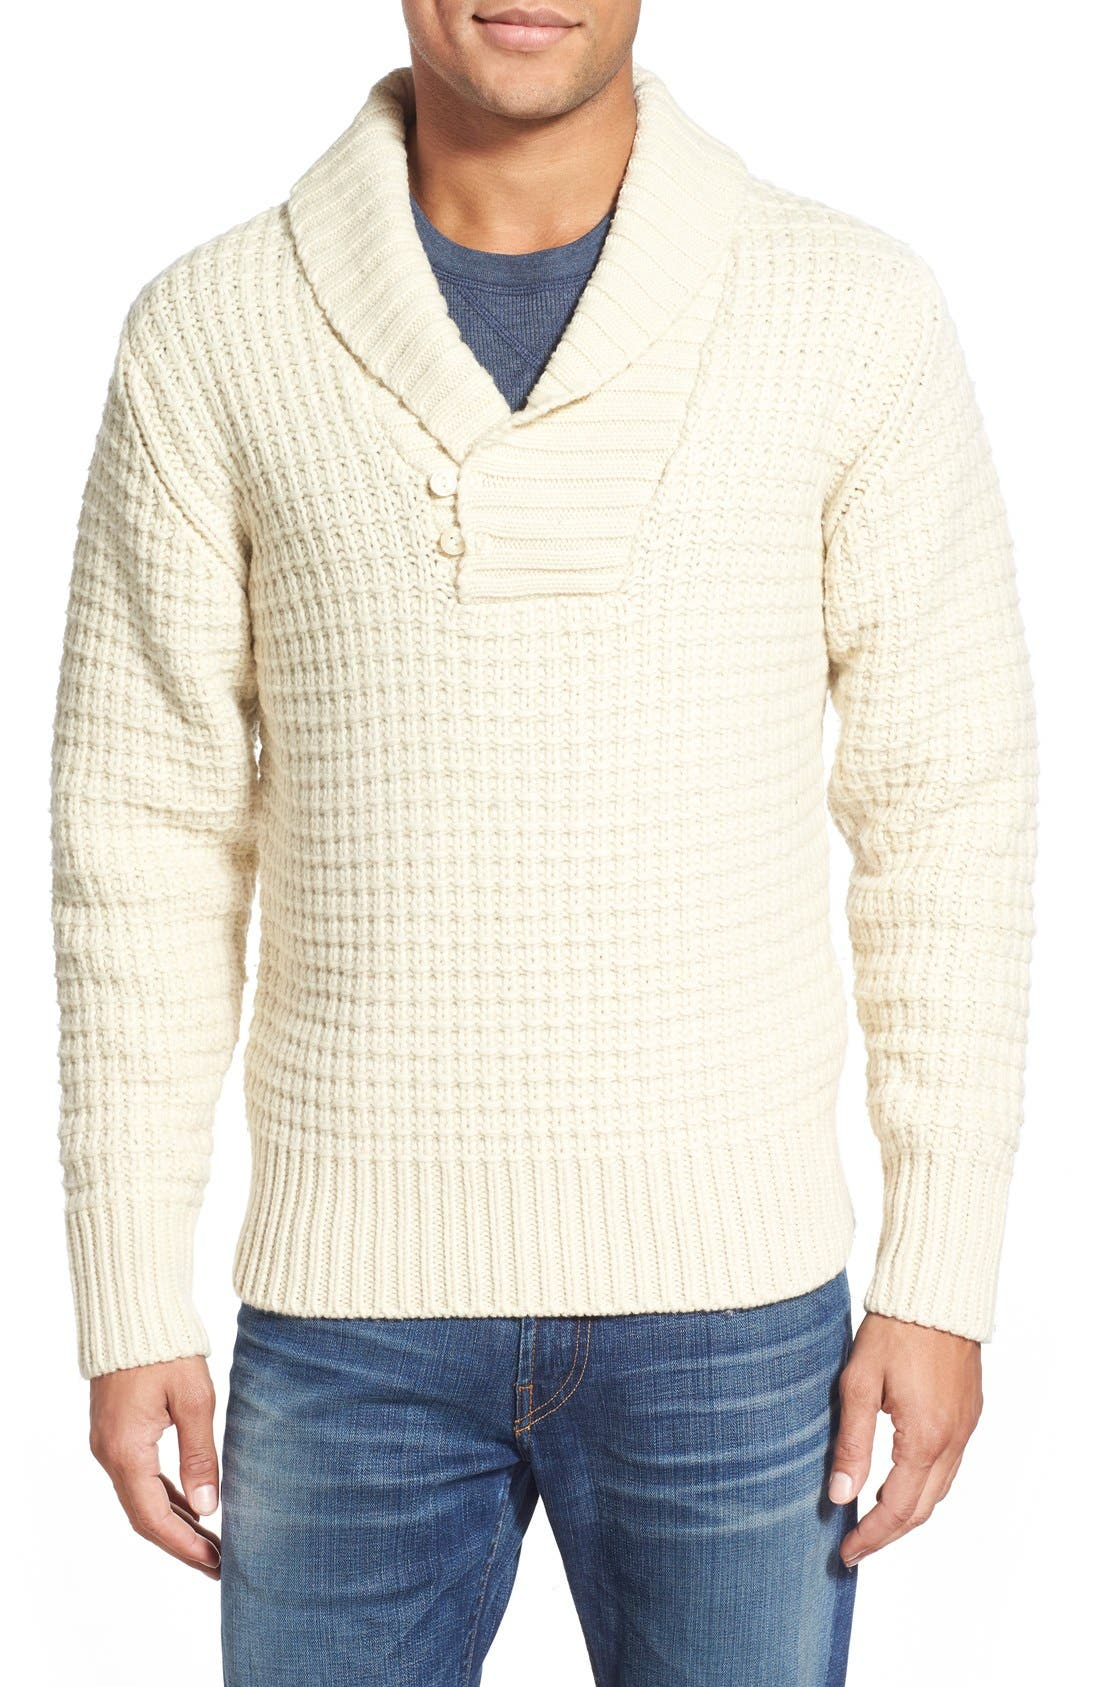 Men's White Sweaters | Nordstrom